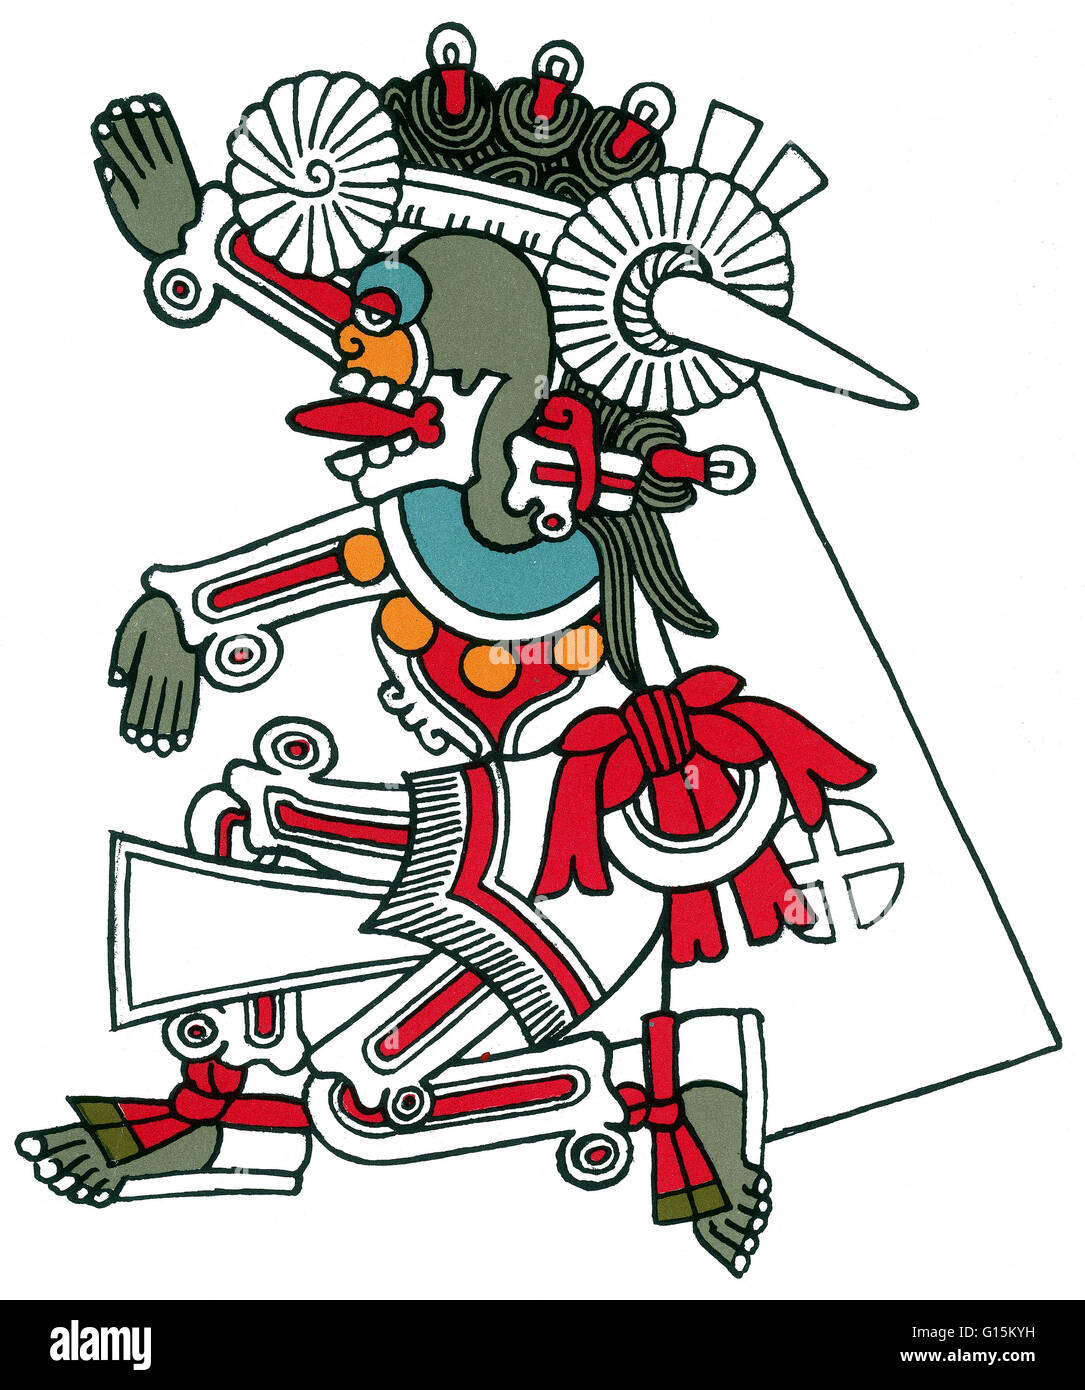 God of death stock photos god of death stock images alamy mictlantecuhtli in aztec mythology was a god of the dead and the king of biocorpaavc Images